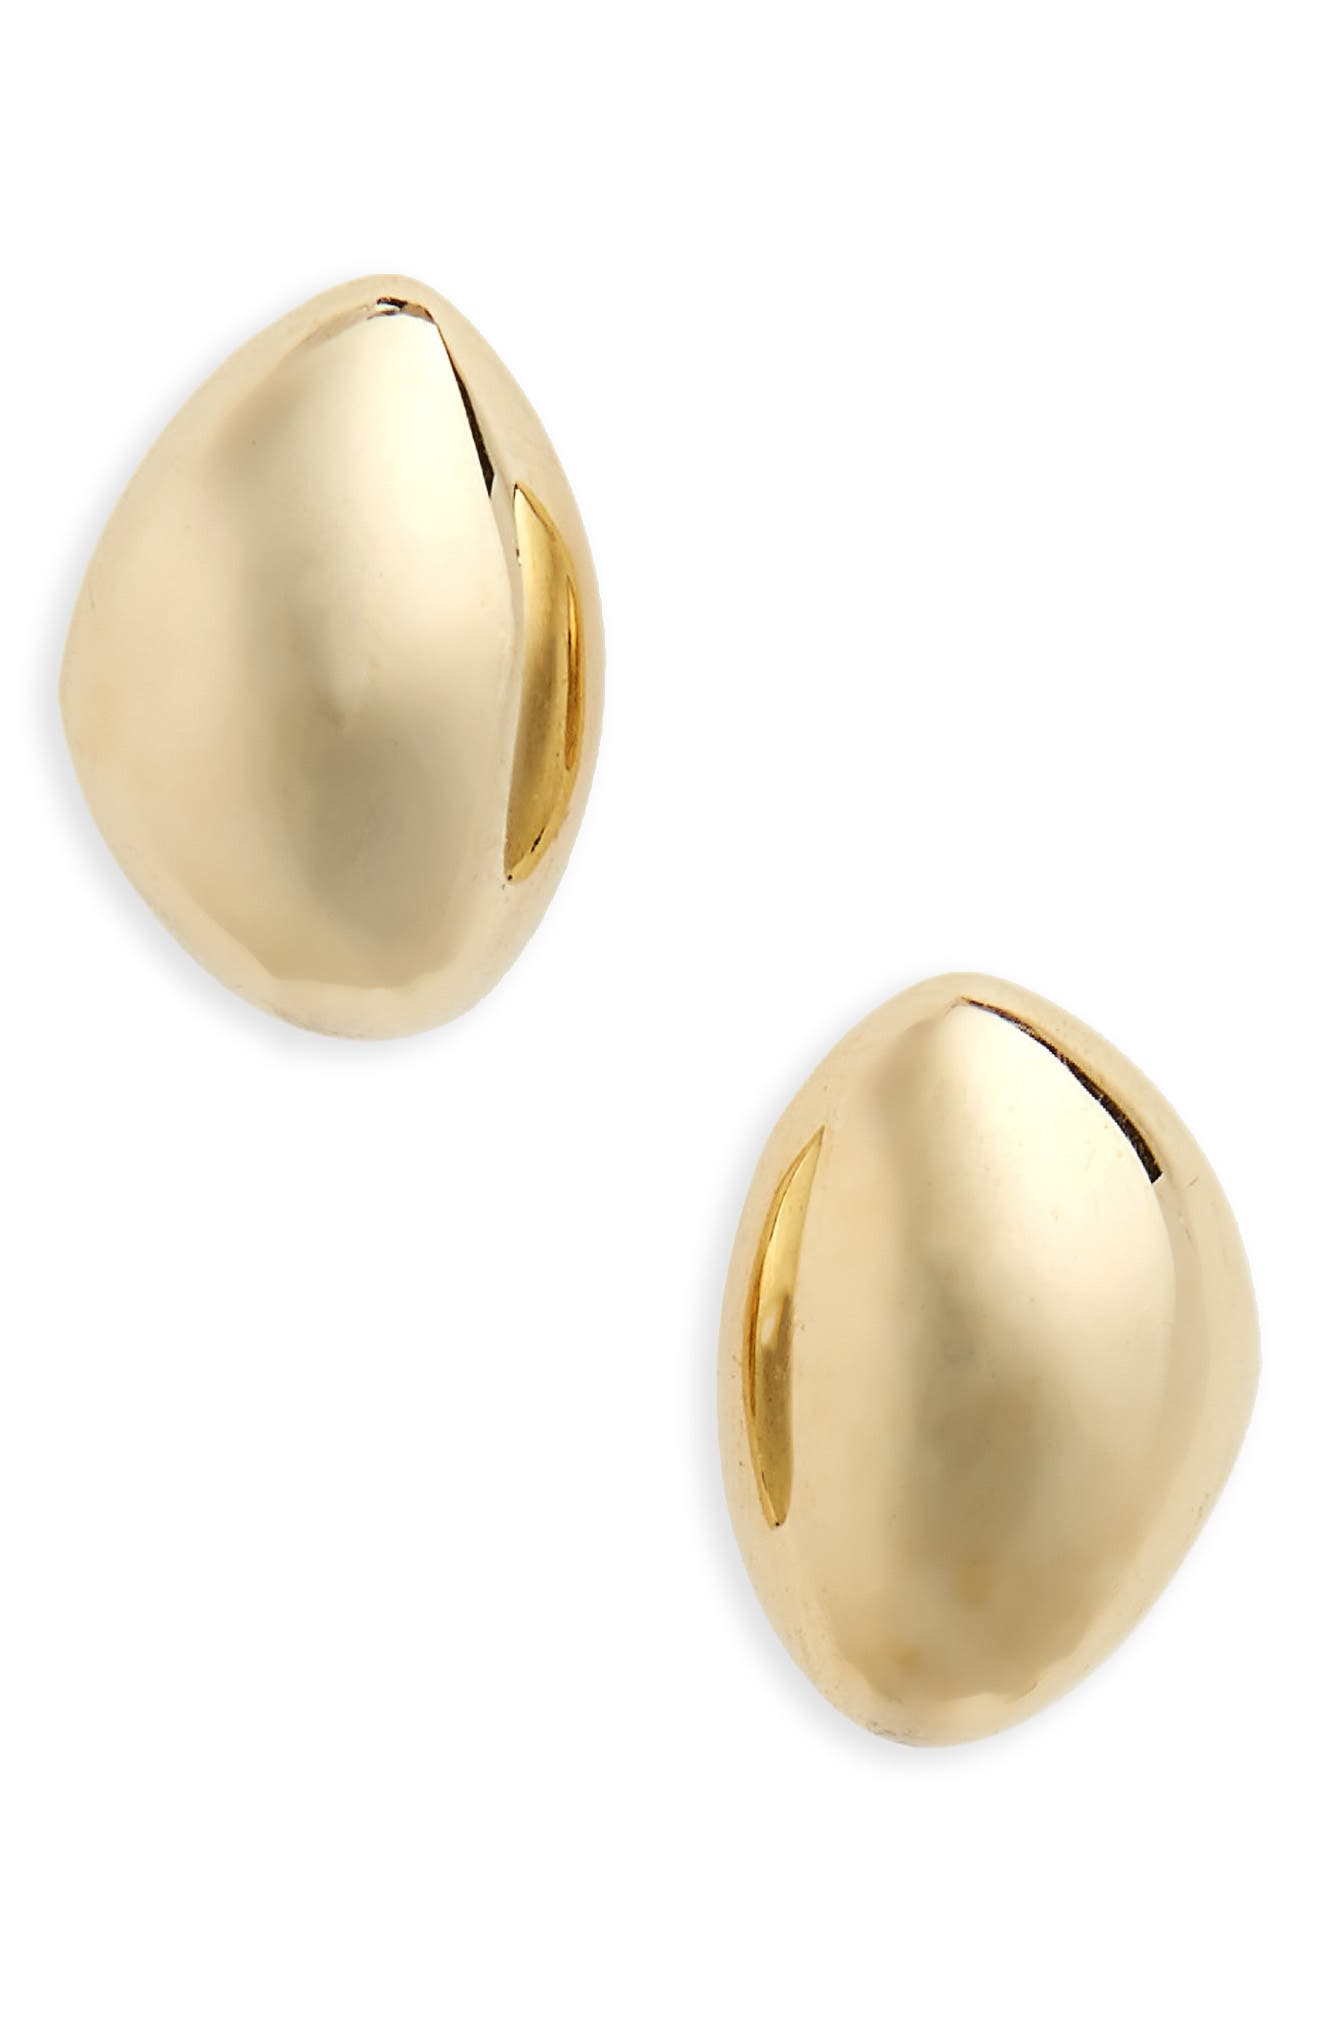 Sabi Stud Earrings,                             Main thumbnail 1, color,                             710